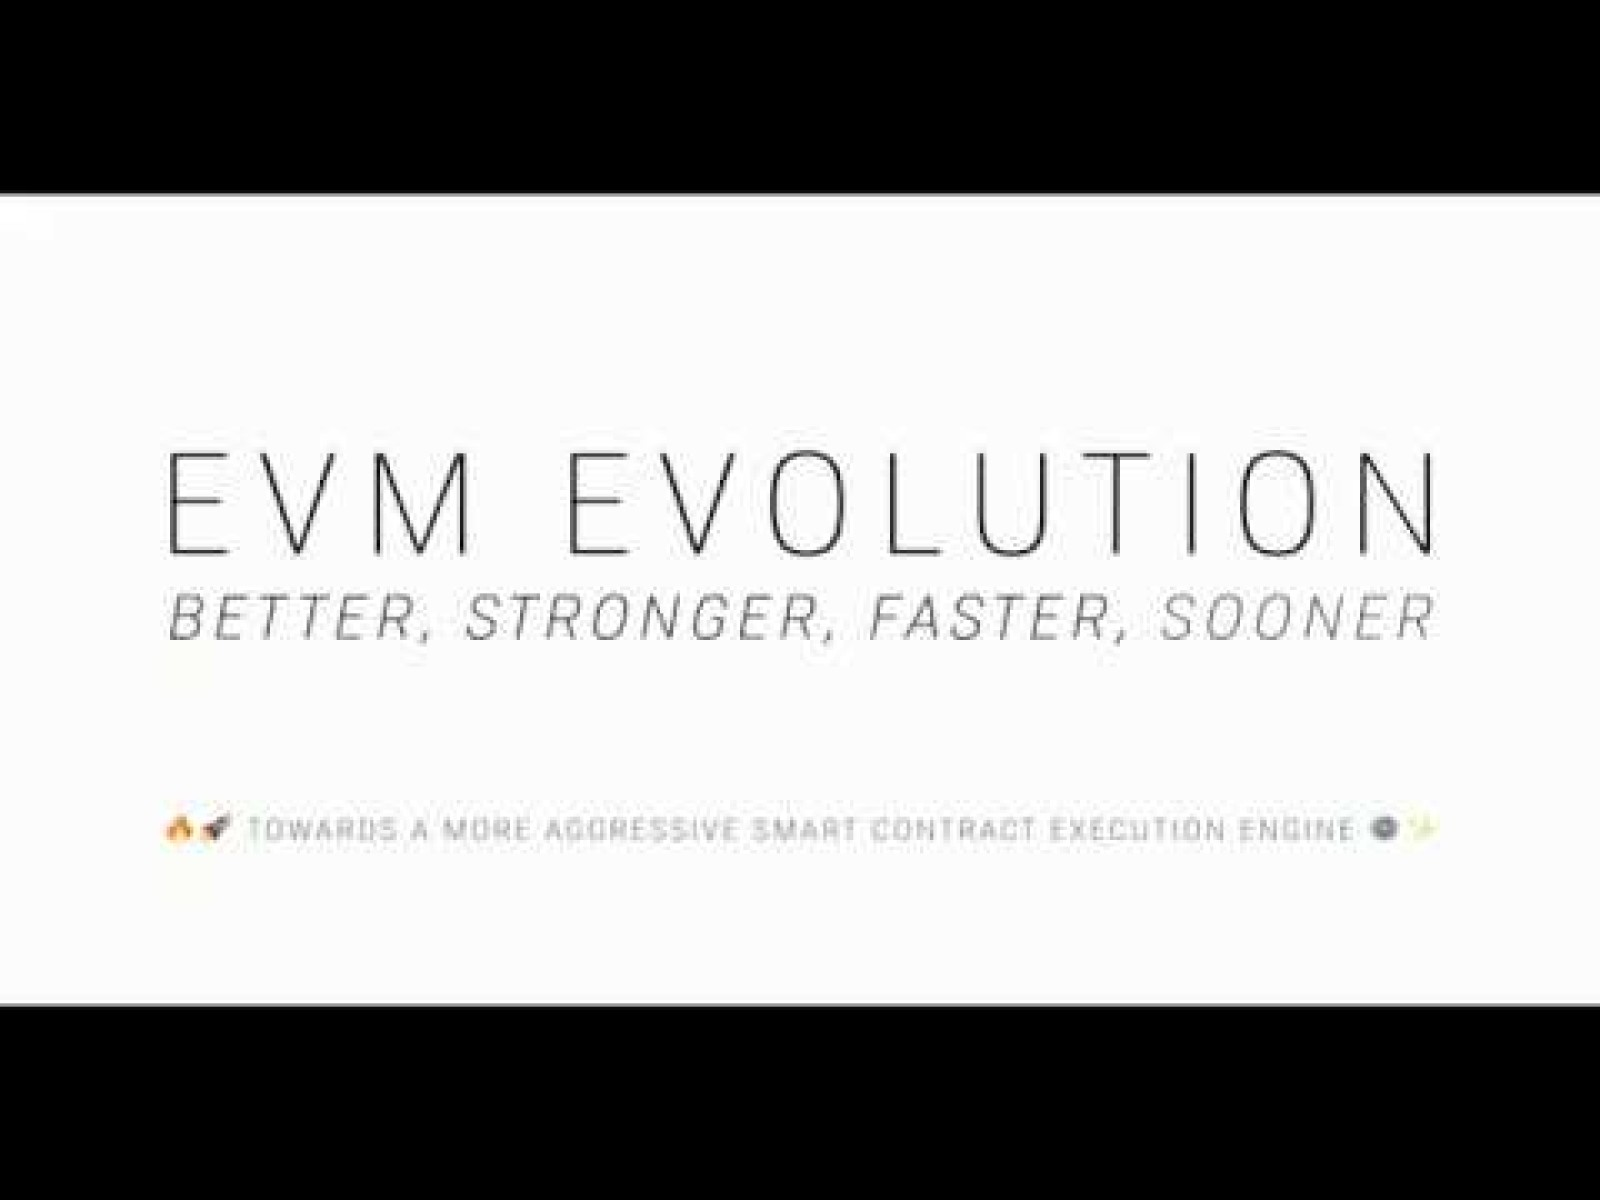 EVM Evolution: Towards a More Aggressive Execution Engine